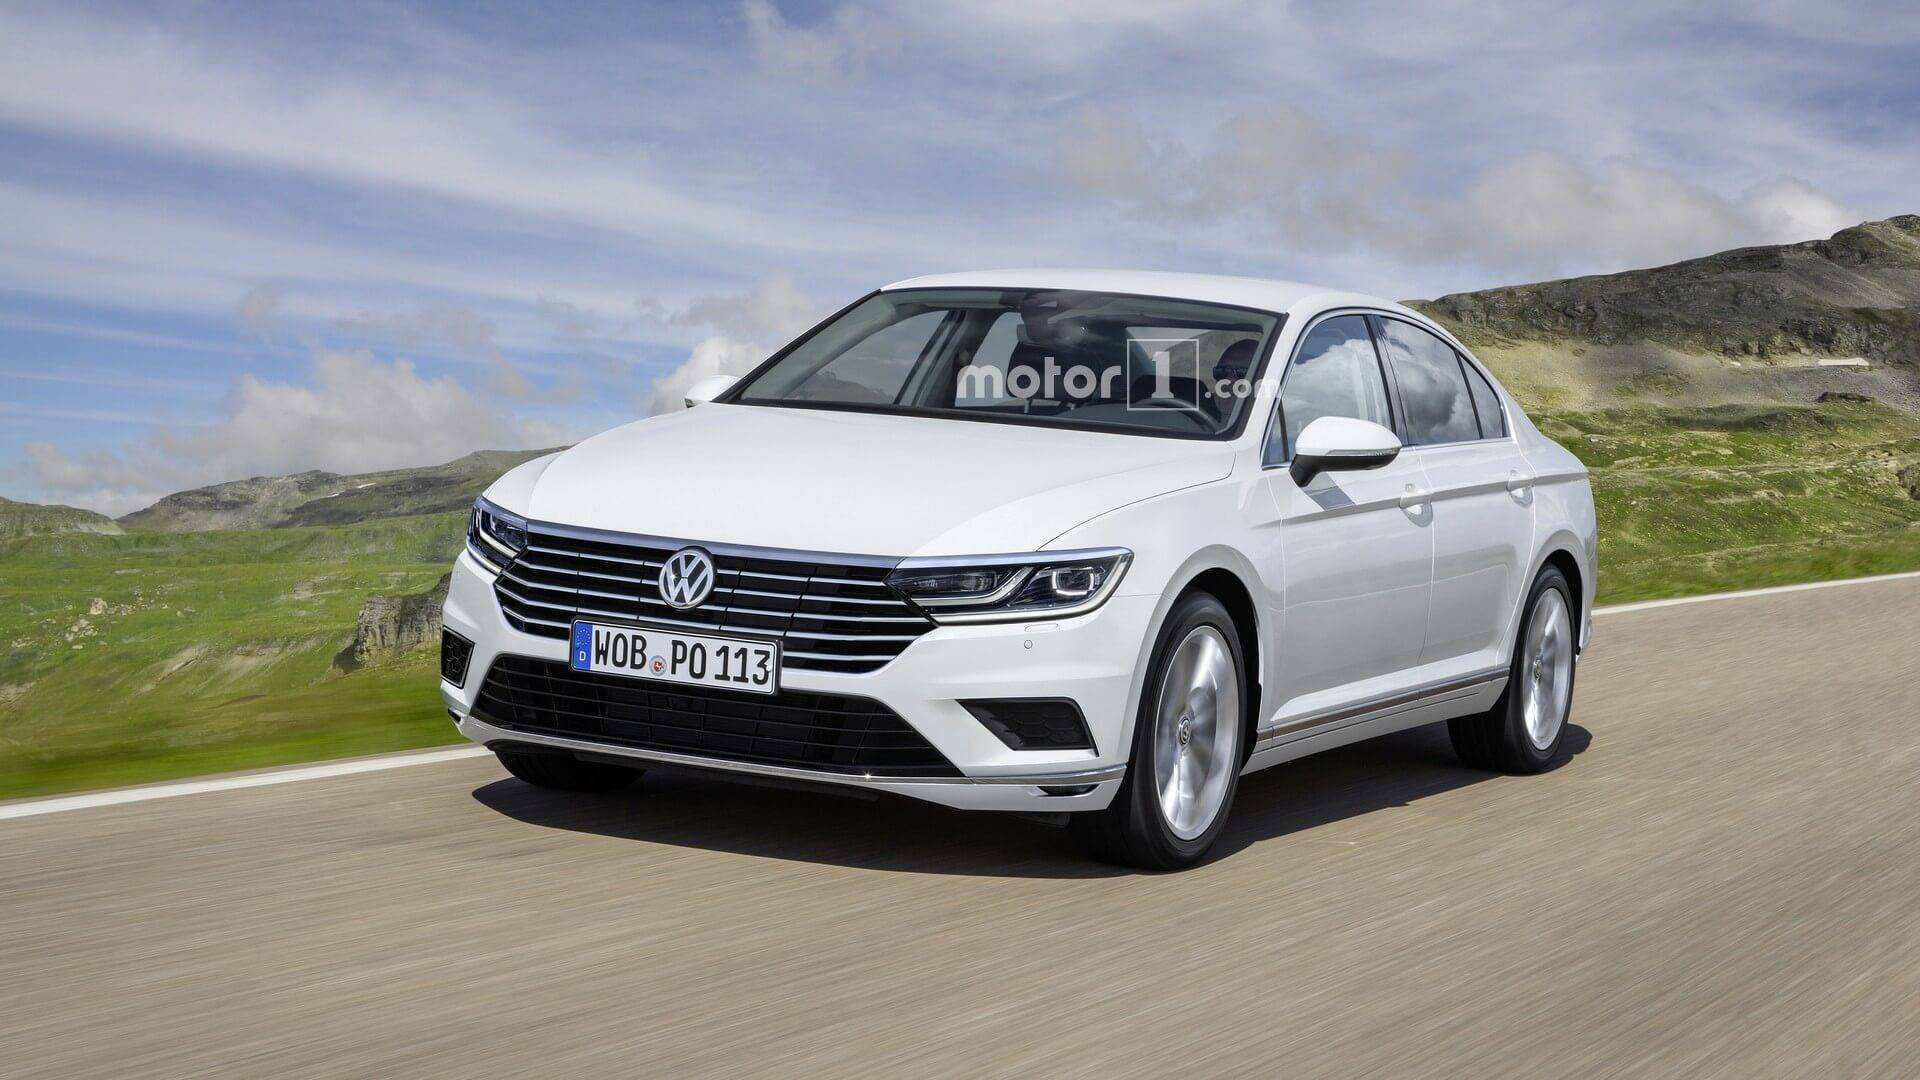 33 The Next Generation Vw Cc Concept And Review